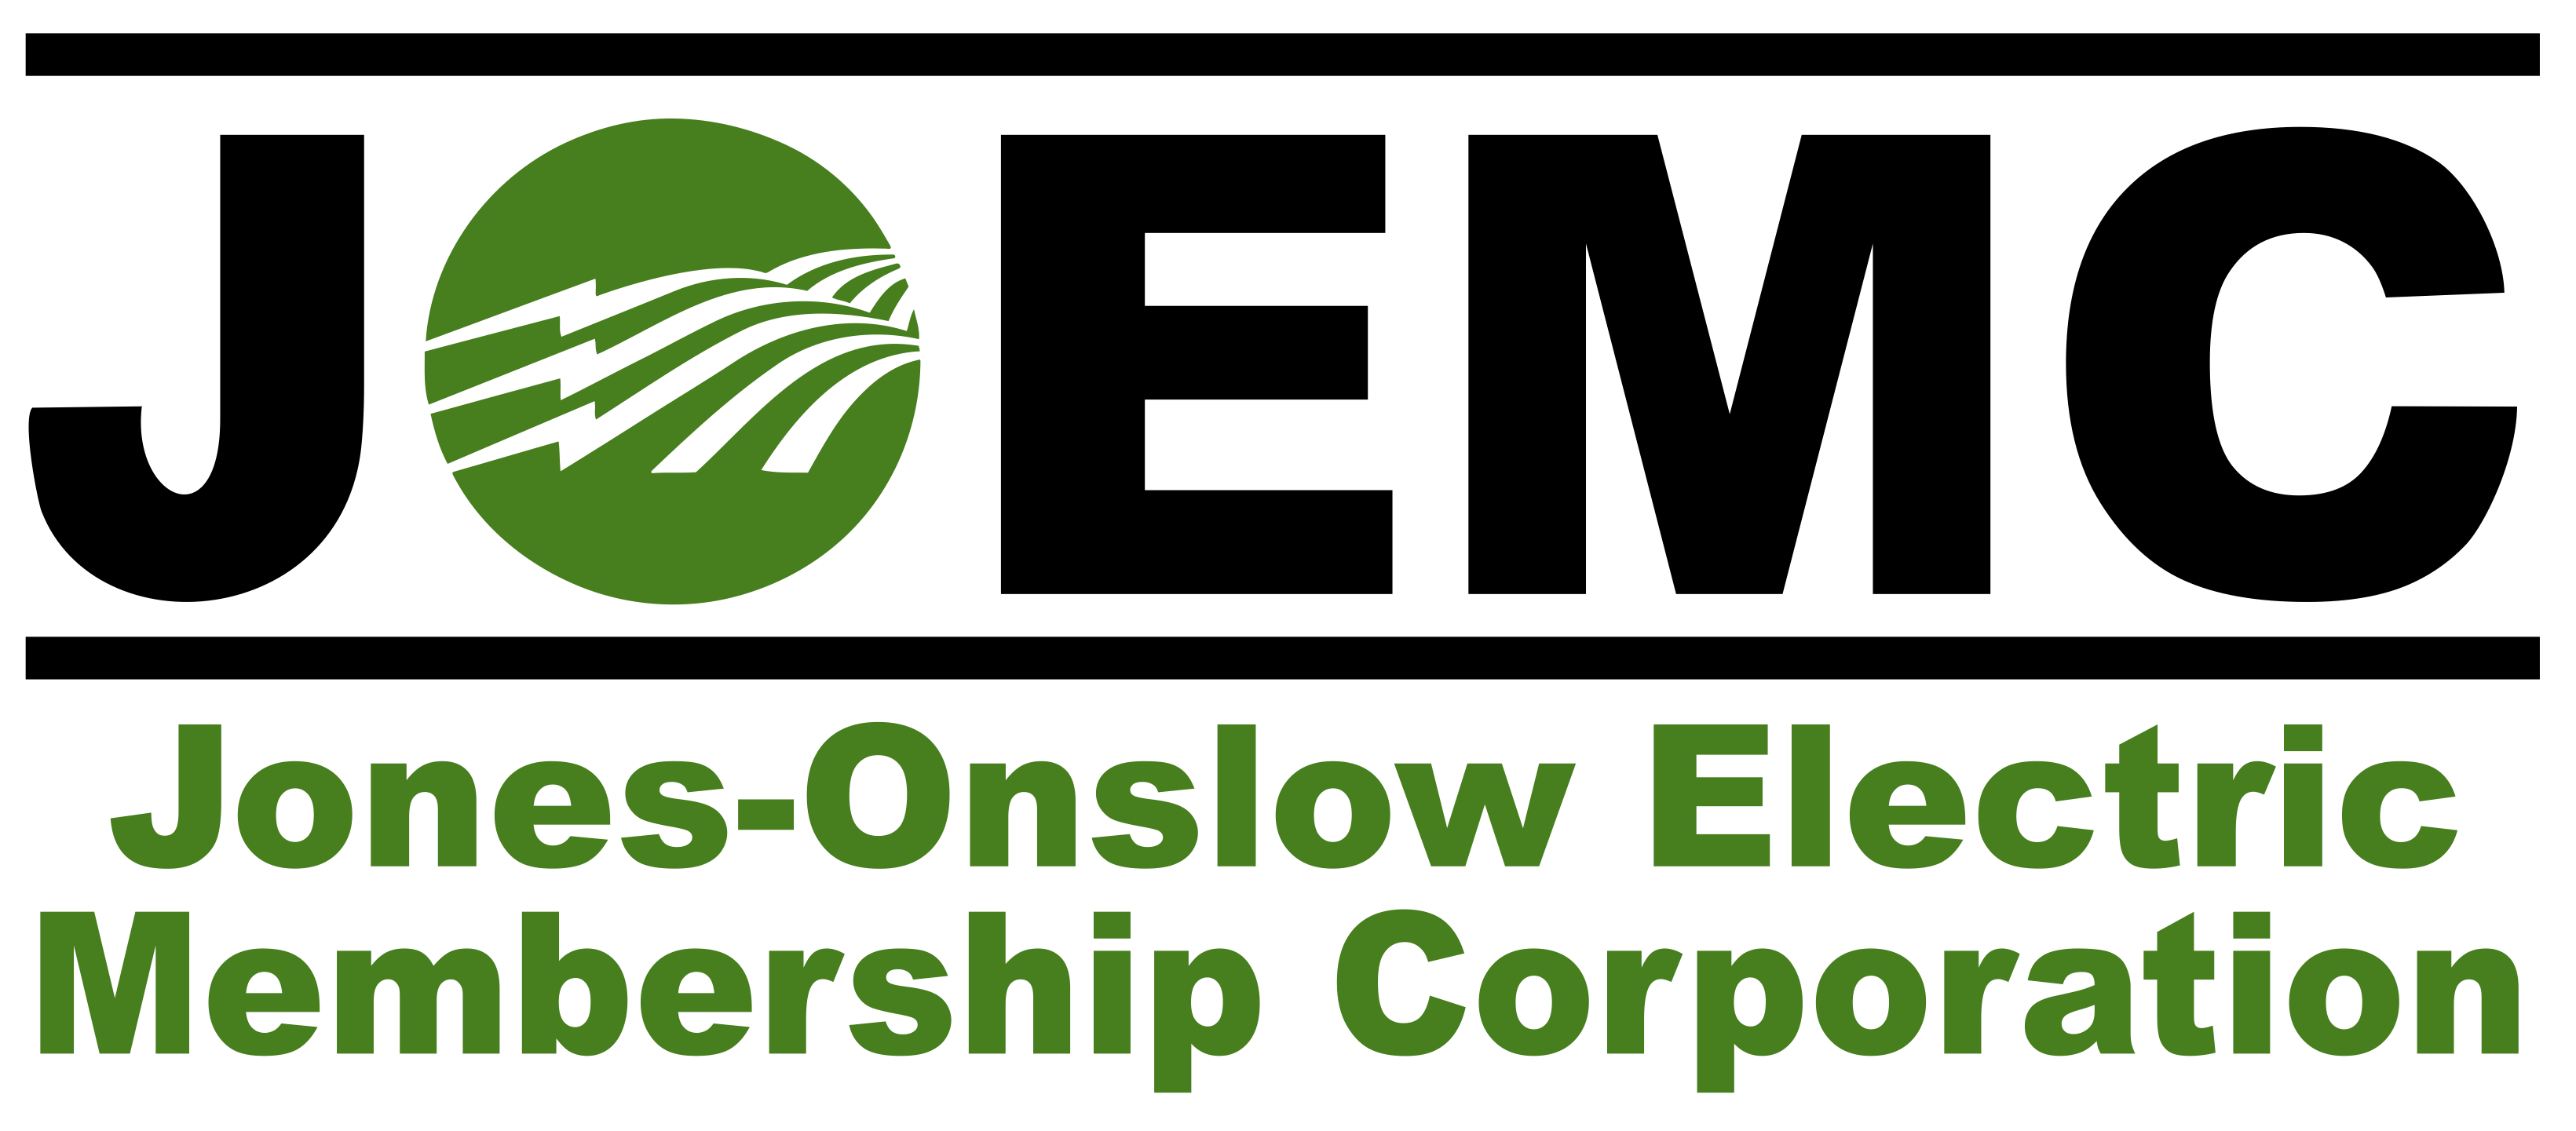 JOEMC - Jones-Onslow Electric Membership Corporation Logo Opens in new window